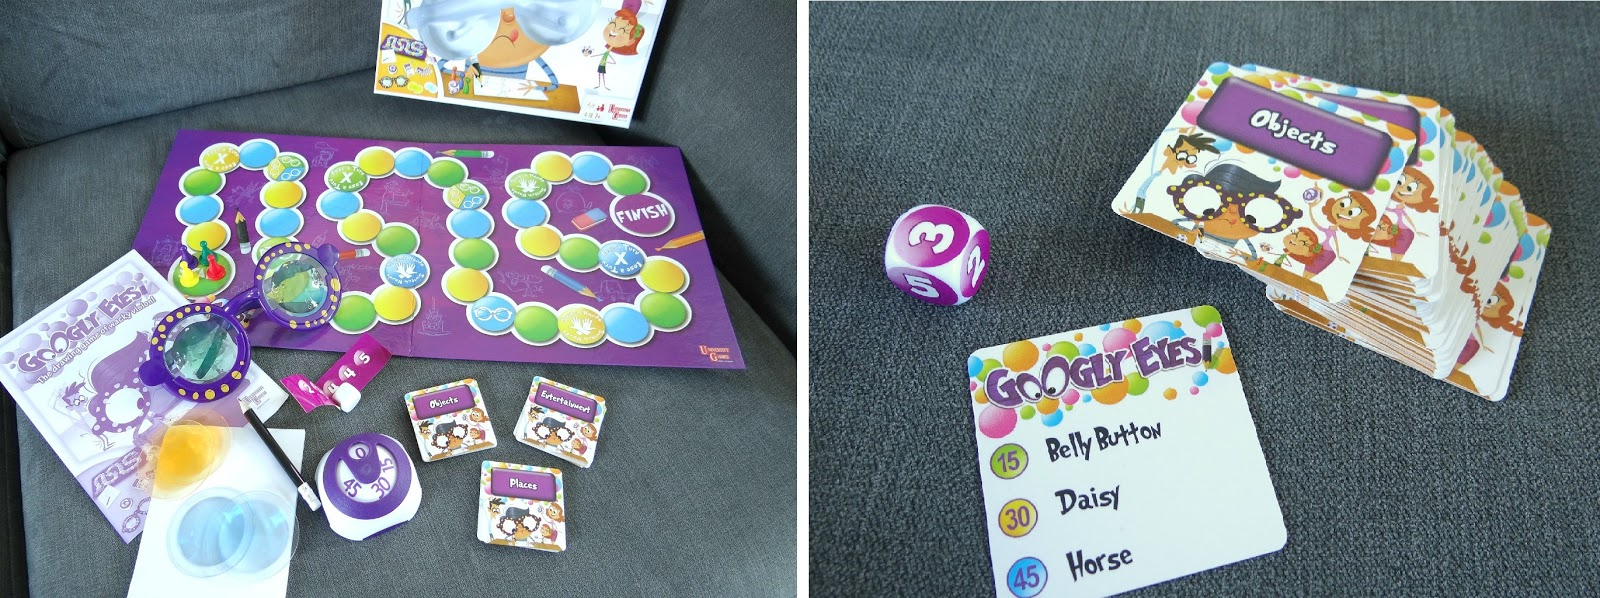 Google Eyes game, family board game, Christmas game